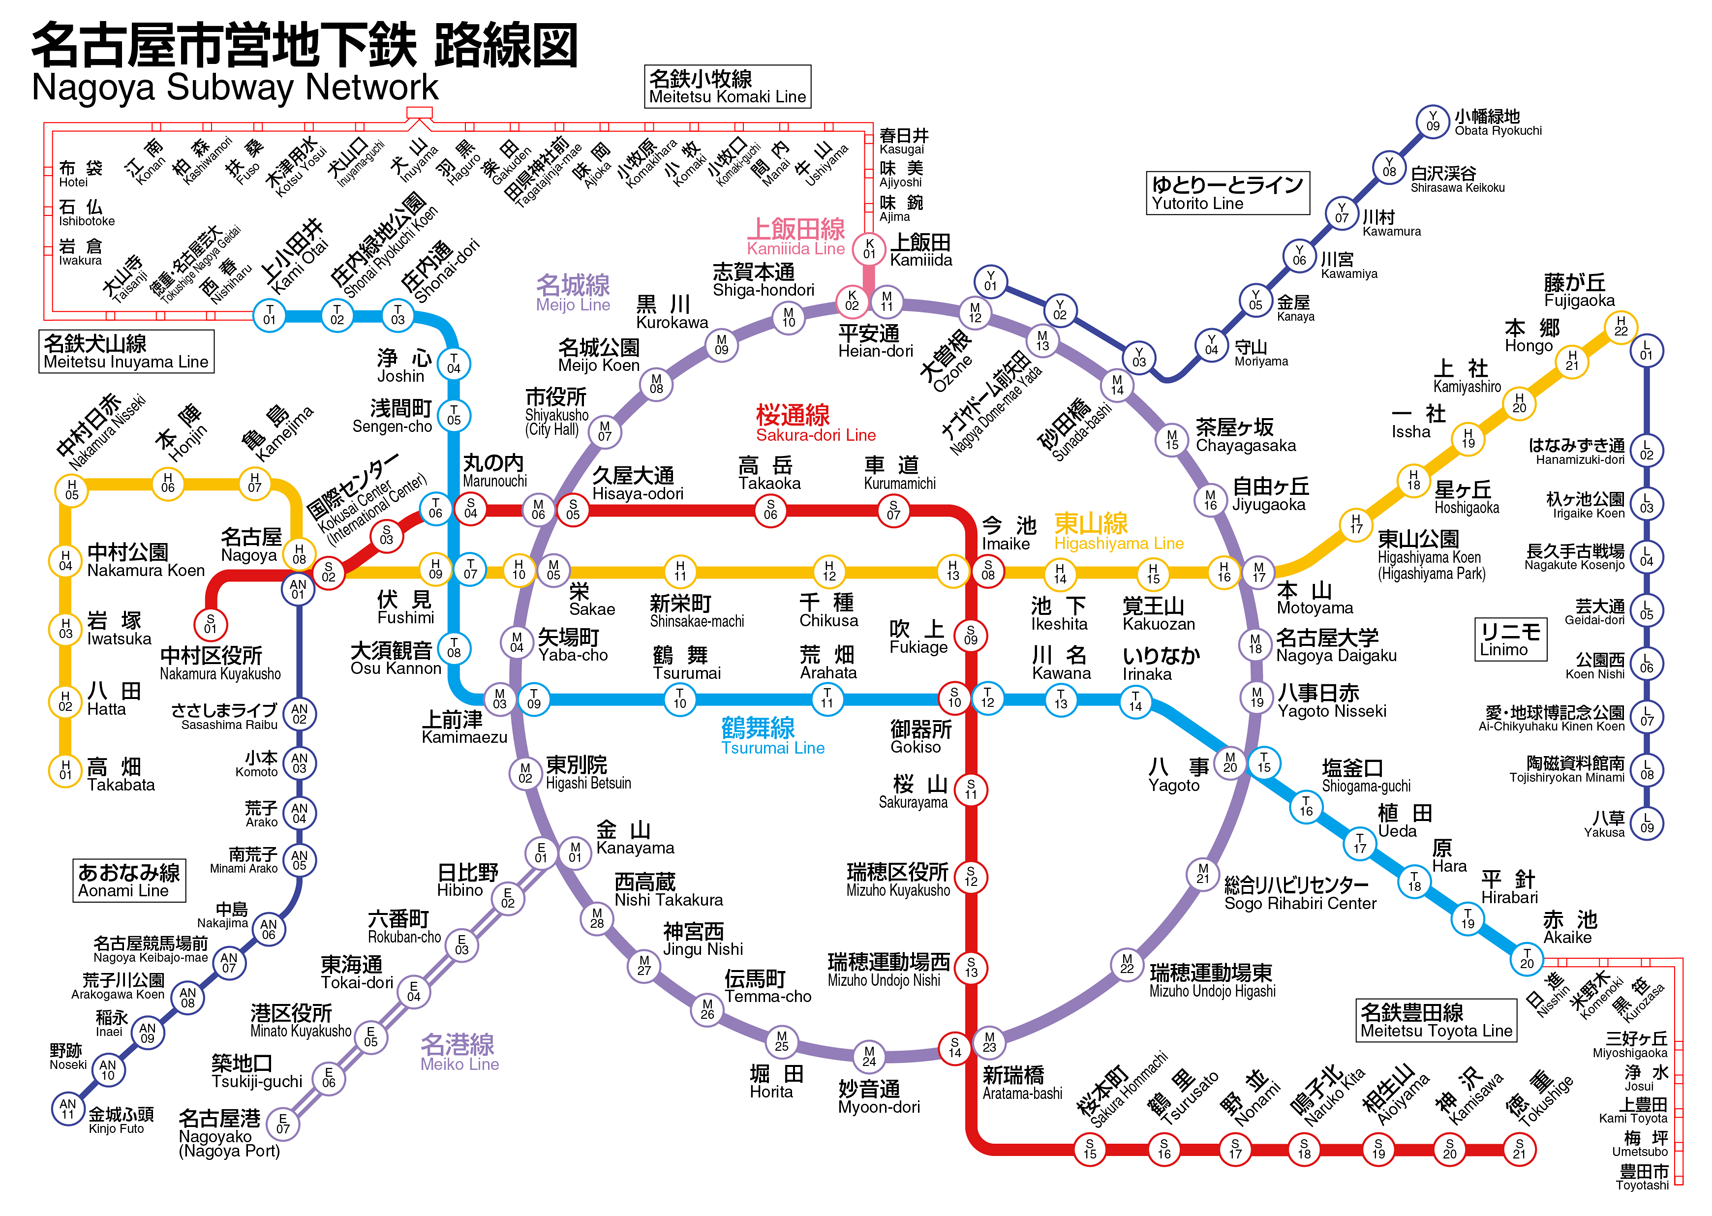 FileNagoya Subway Network.png